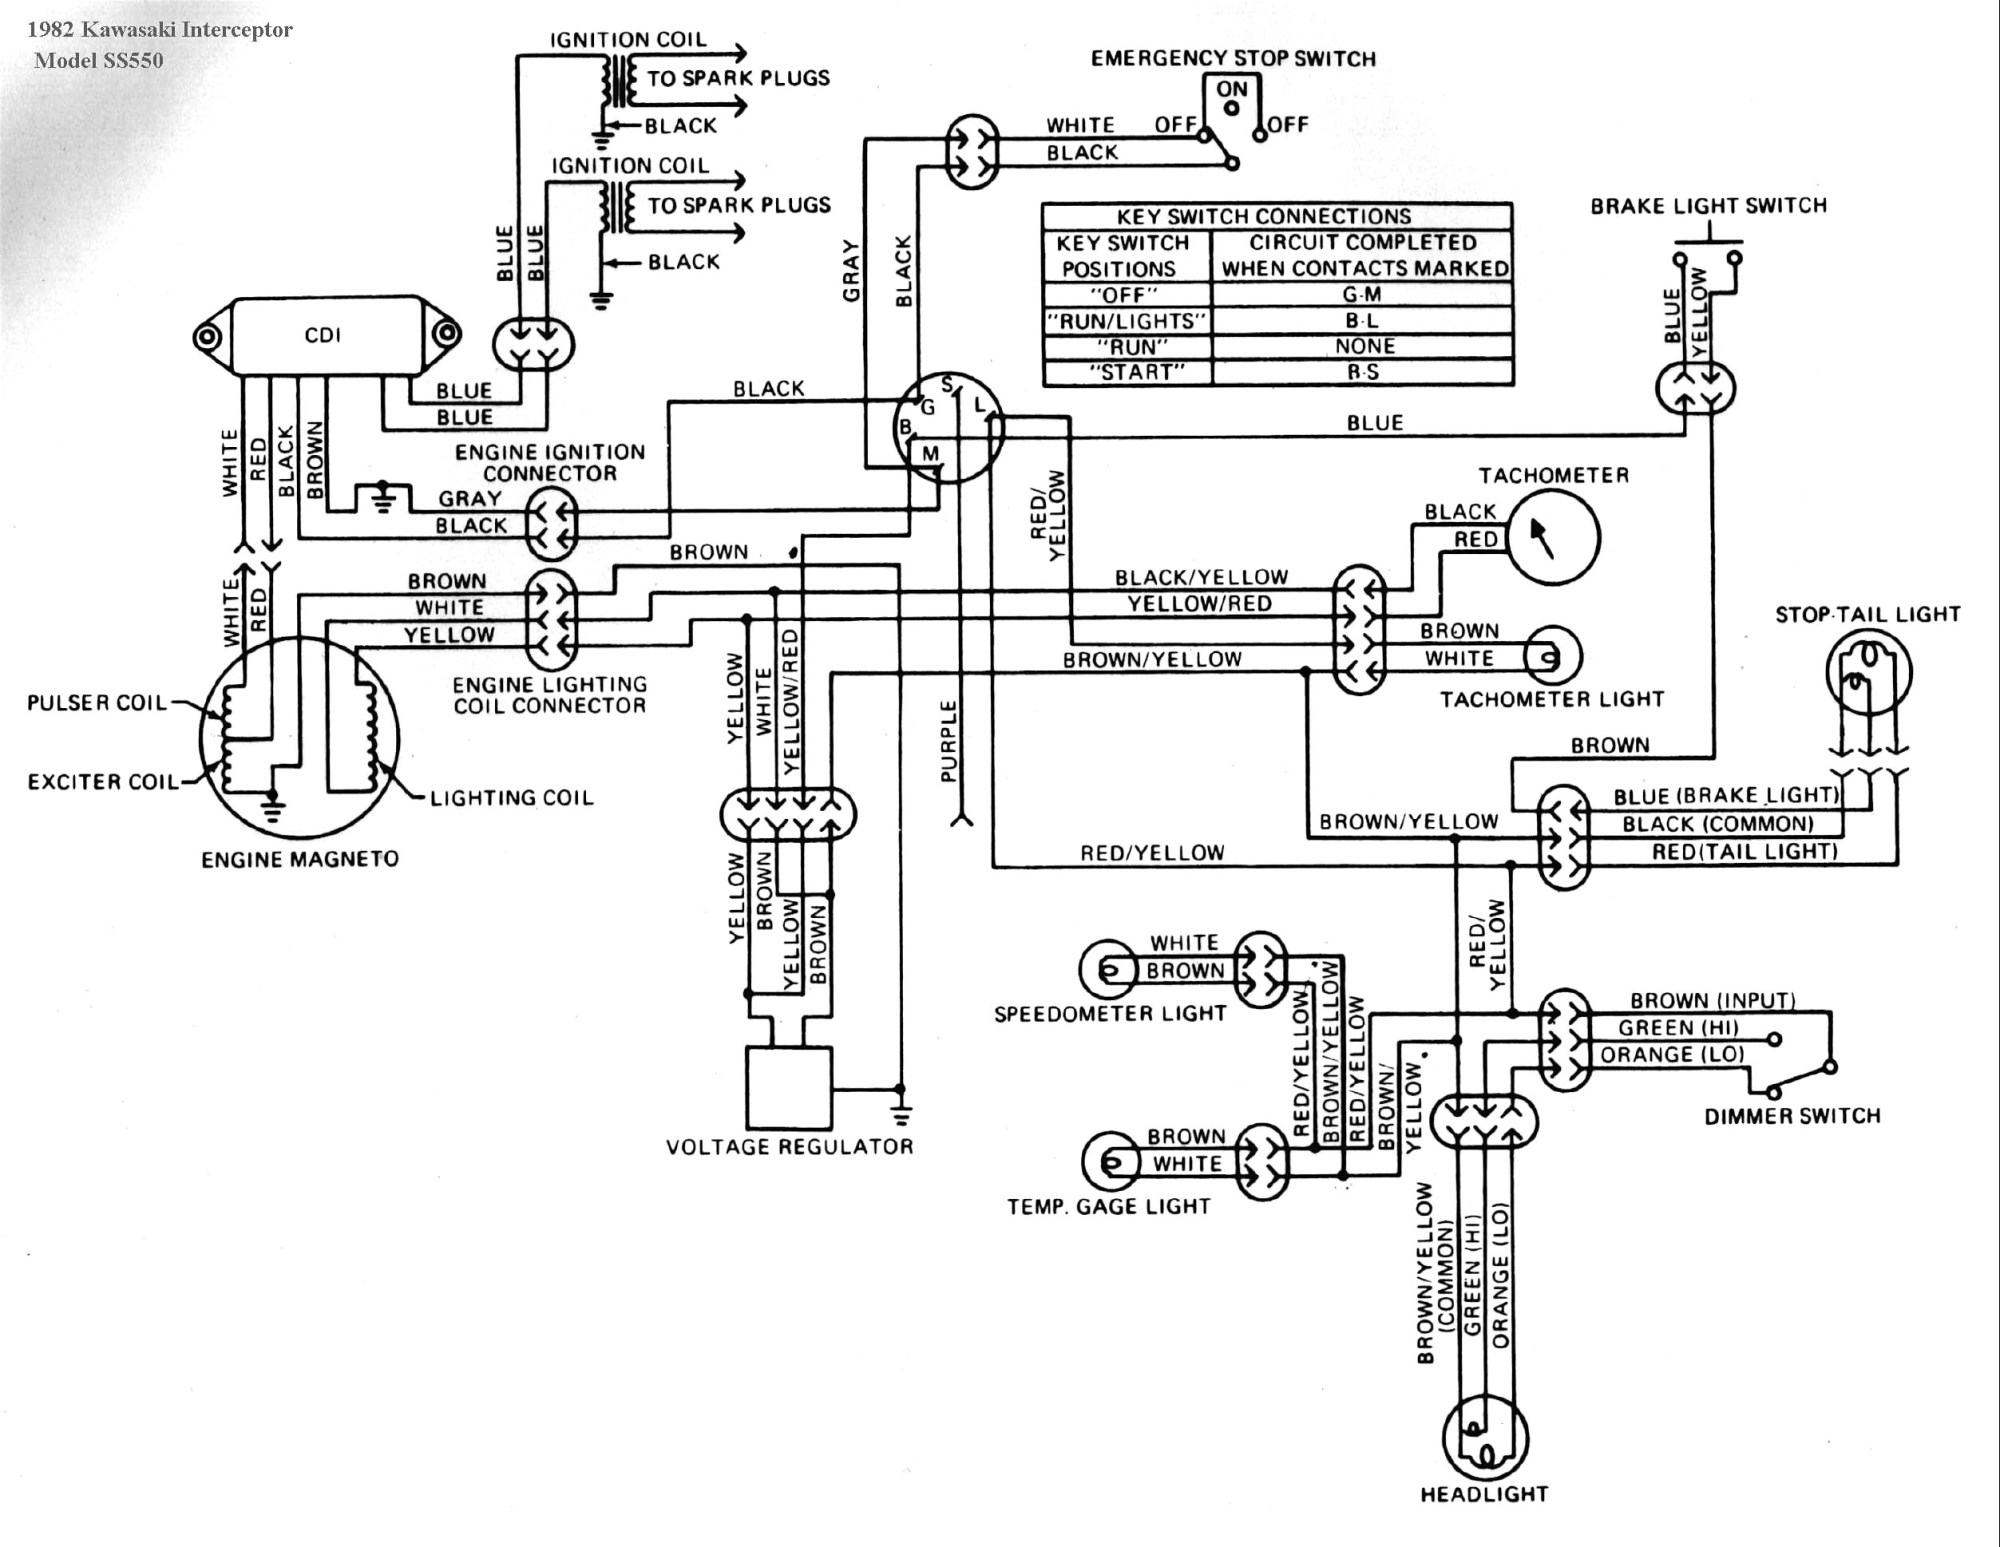 hight resolution of kawasaki atv 220 wiring diagram wiring diagram mega kawasaki 400 4 wheeler wiring diagram